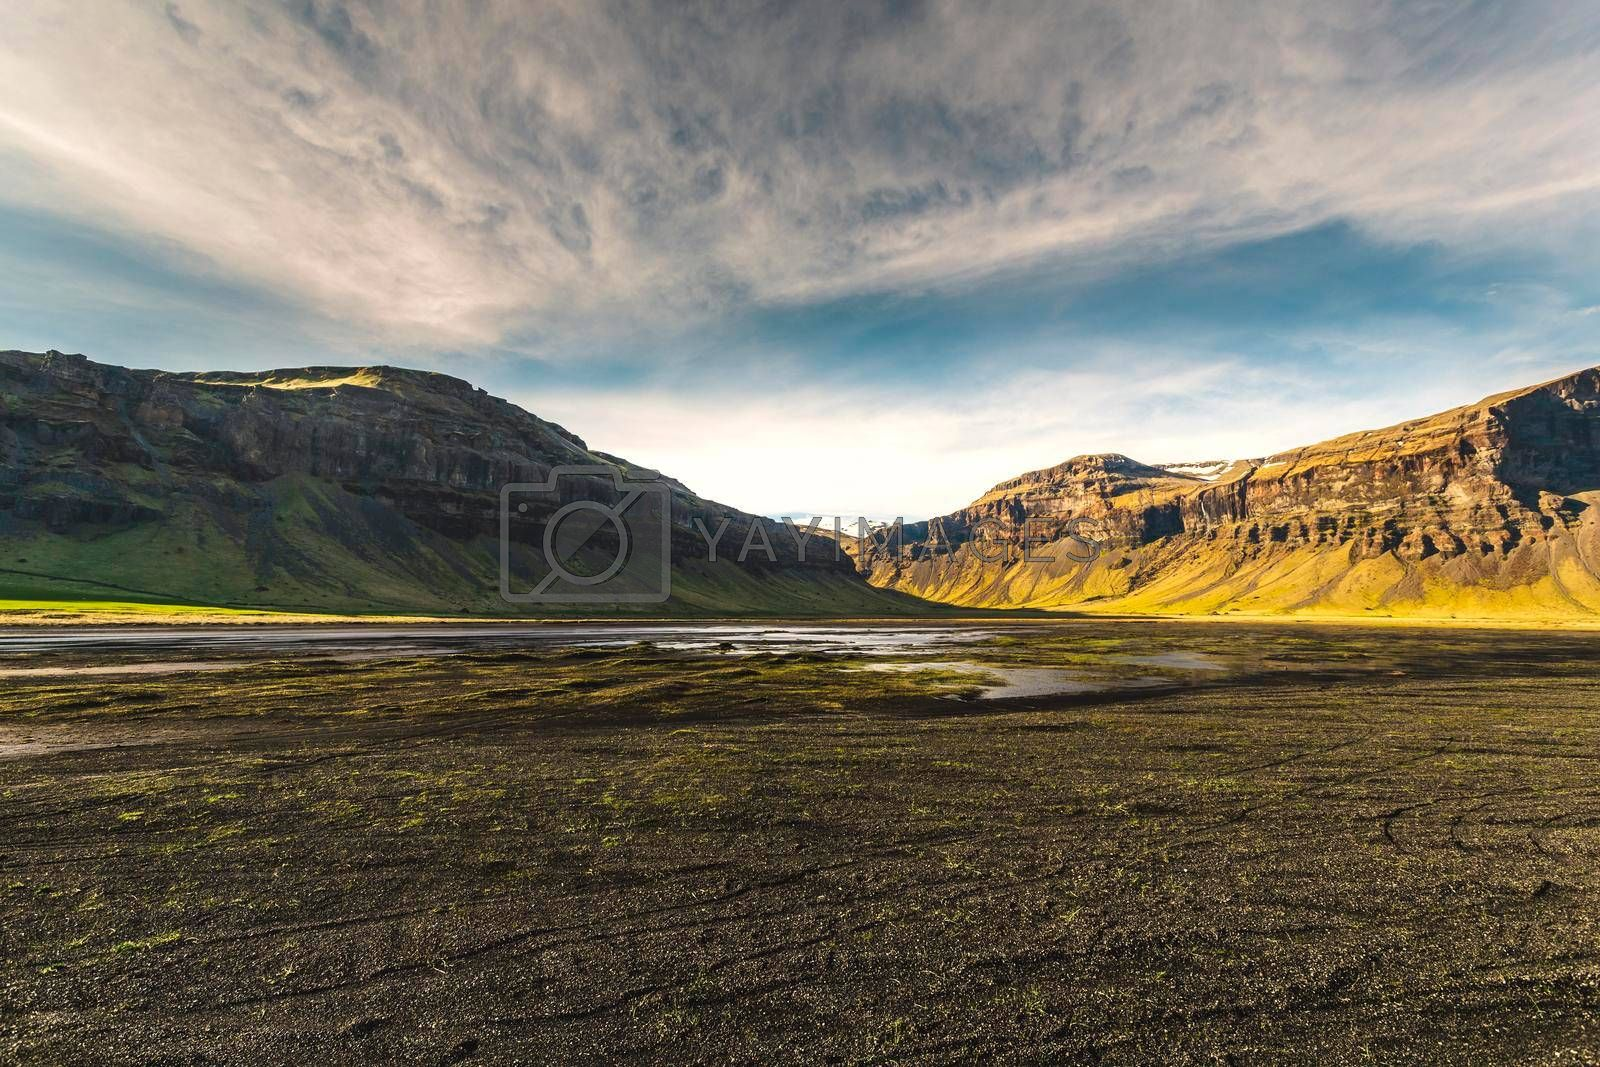 Royalty free image of Endeless nature - Iceland by Iko